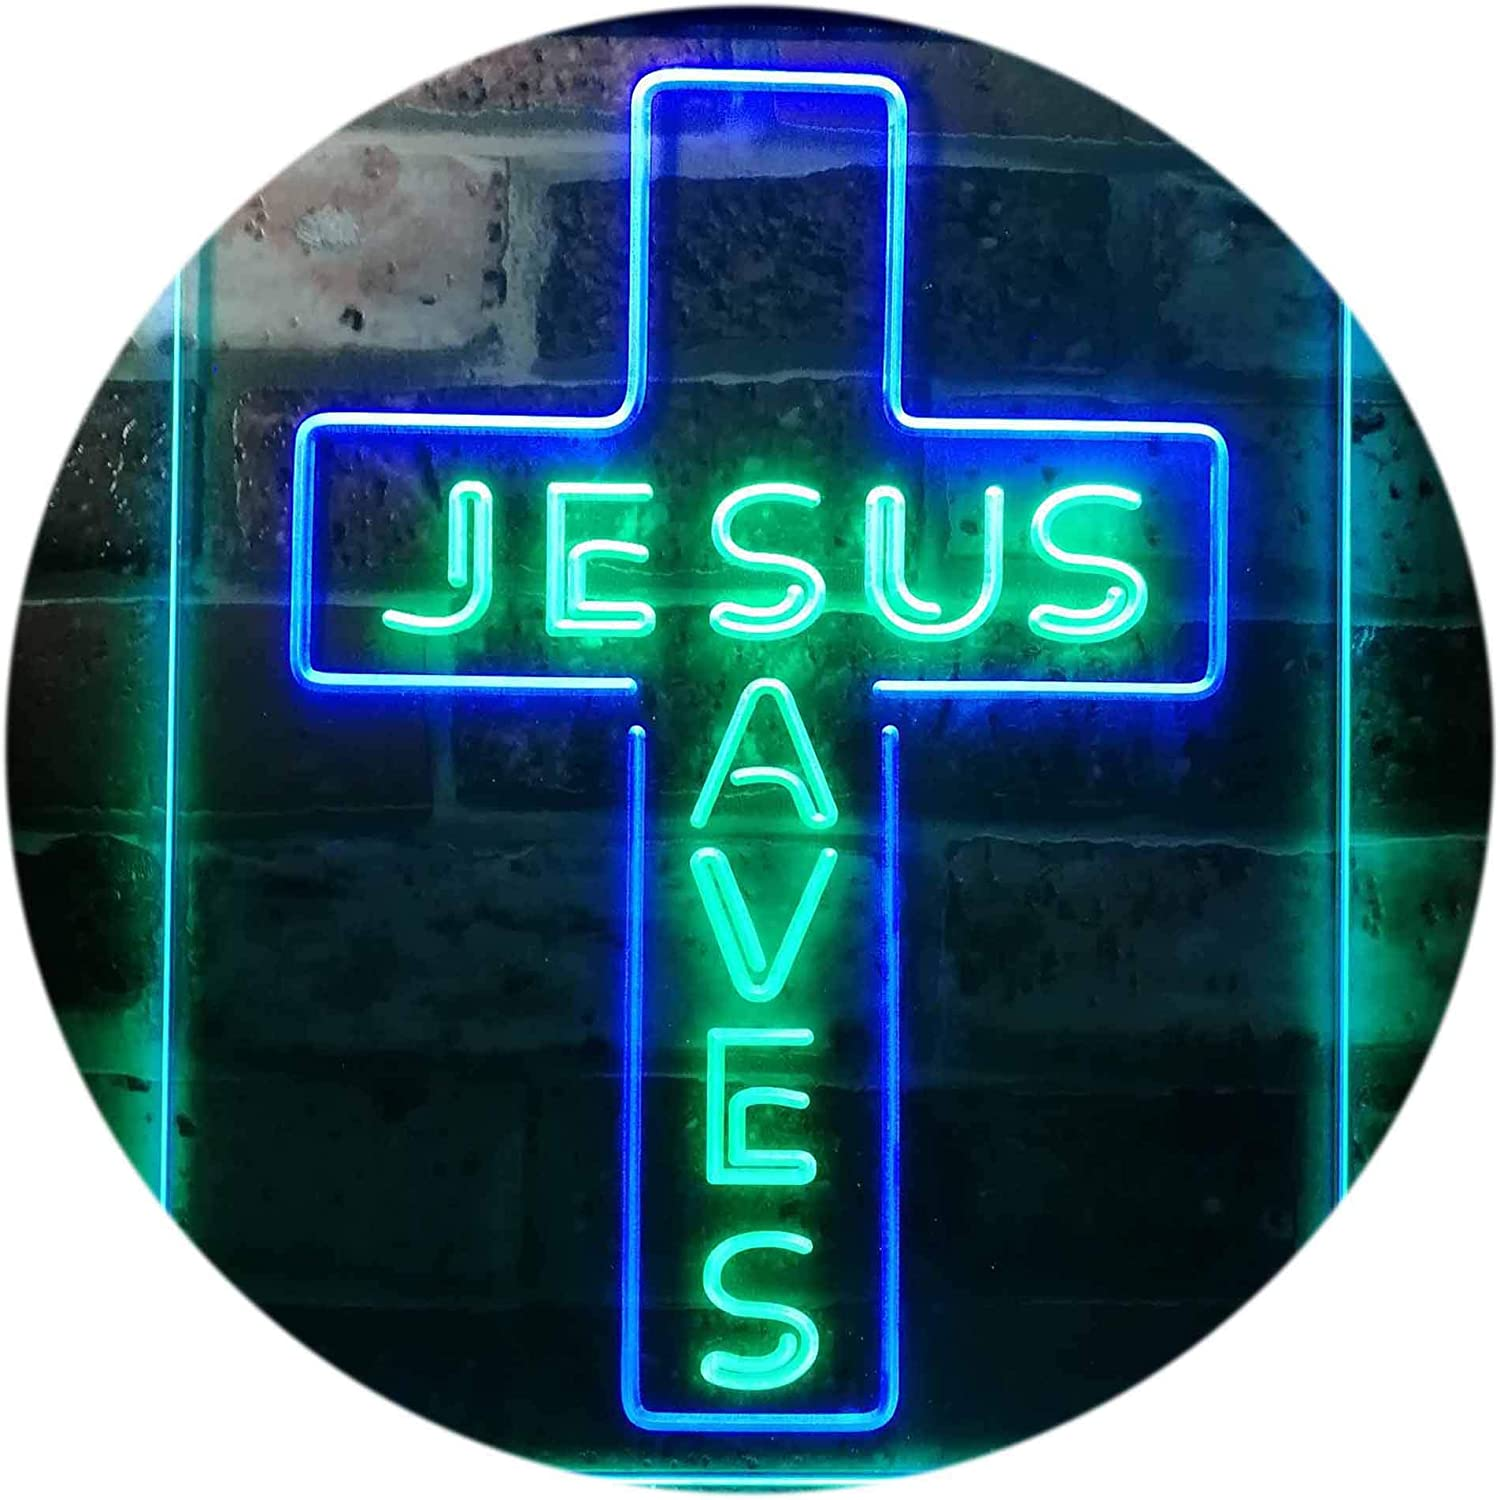 ADVPRO Jesus Saves Cross Wall Plaque Housewarming Gifts Dual Color LED Neon Sign Green & Blue 8.5